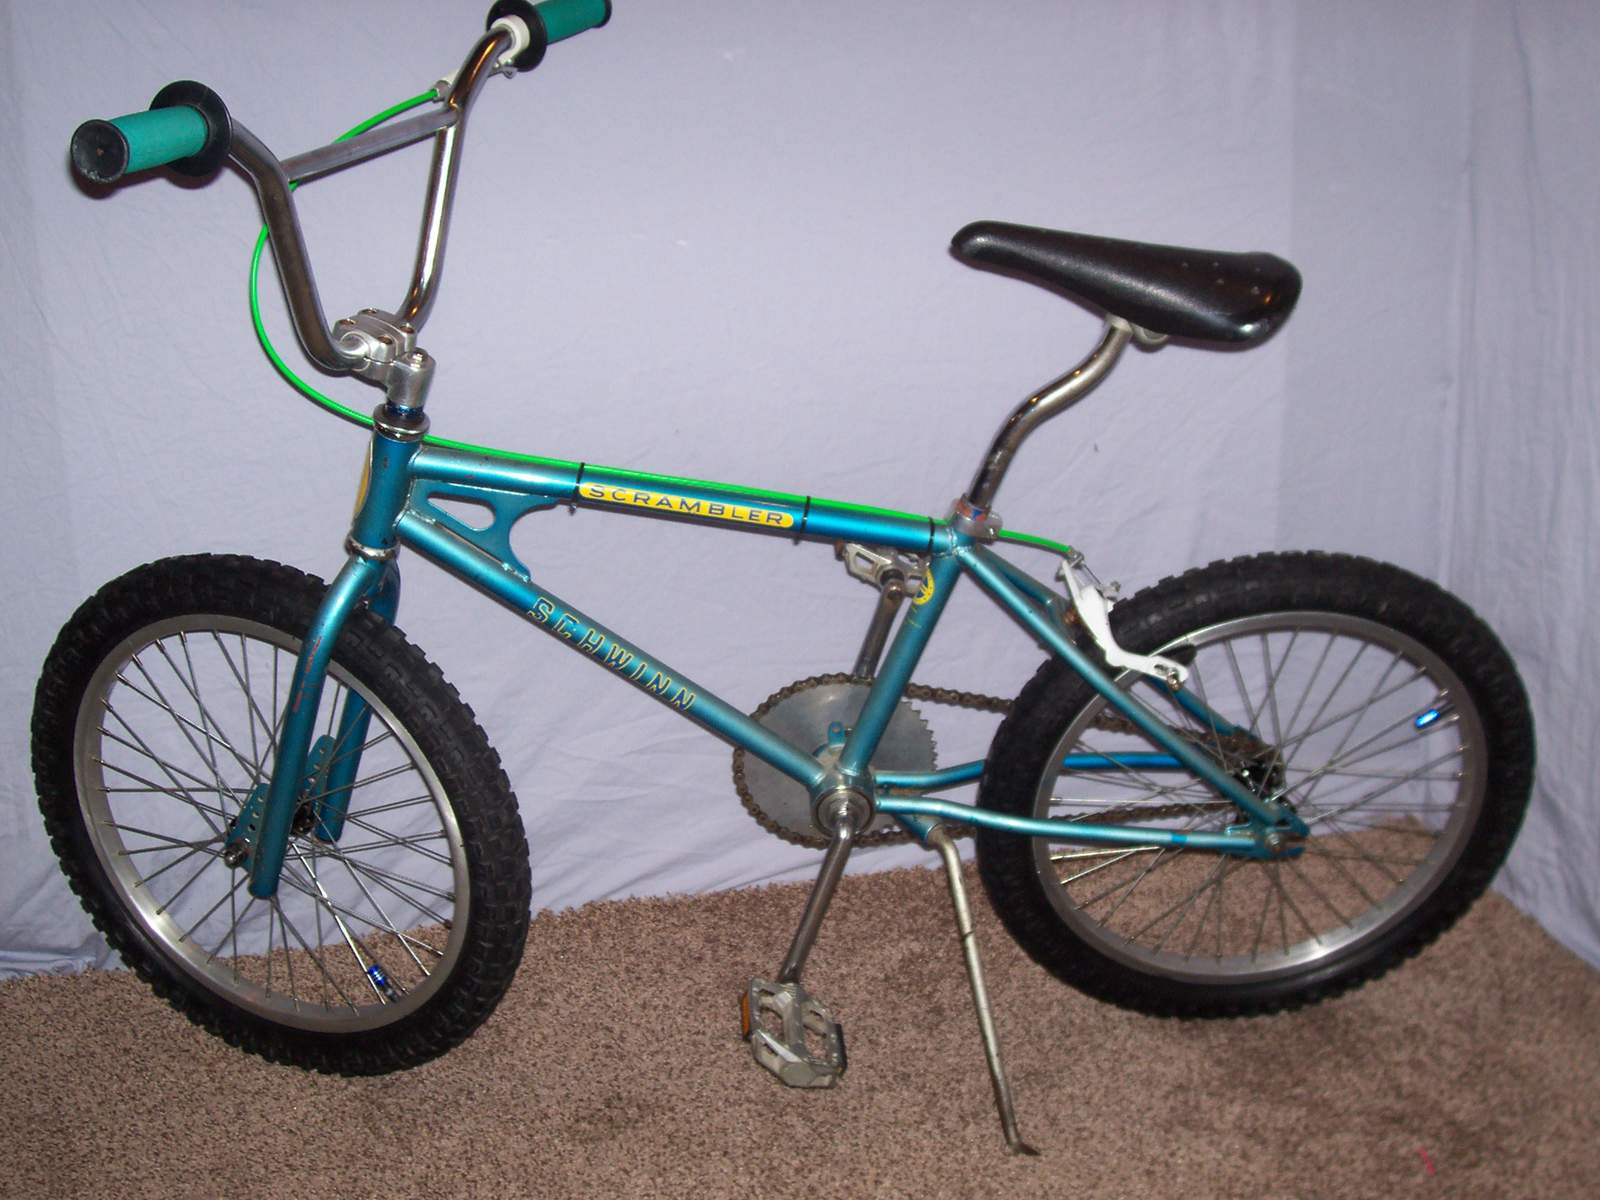 https://s3.amazonaws.com/uploads.bmxmuseum.com/user-images/61851/100_92475987448ed6.jpg